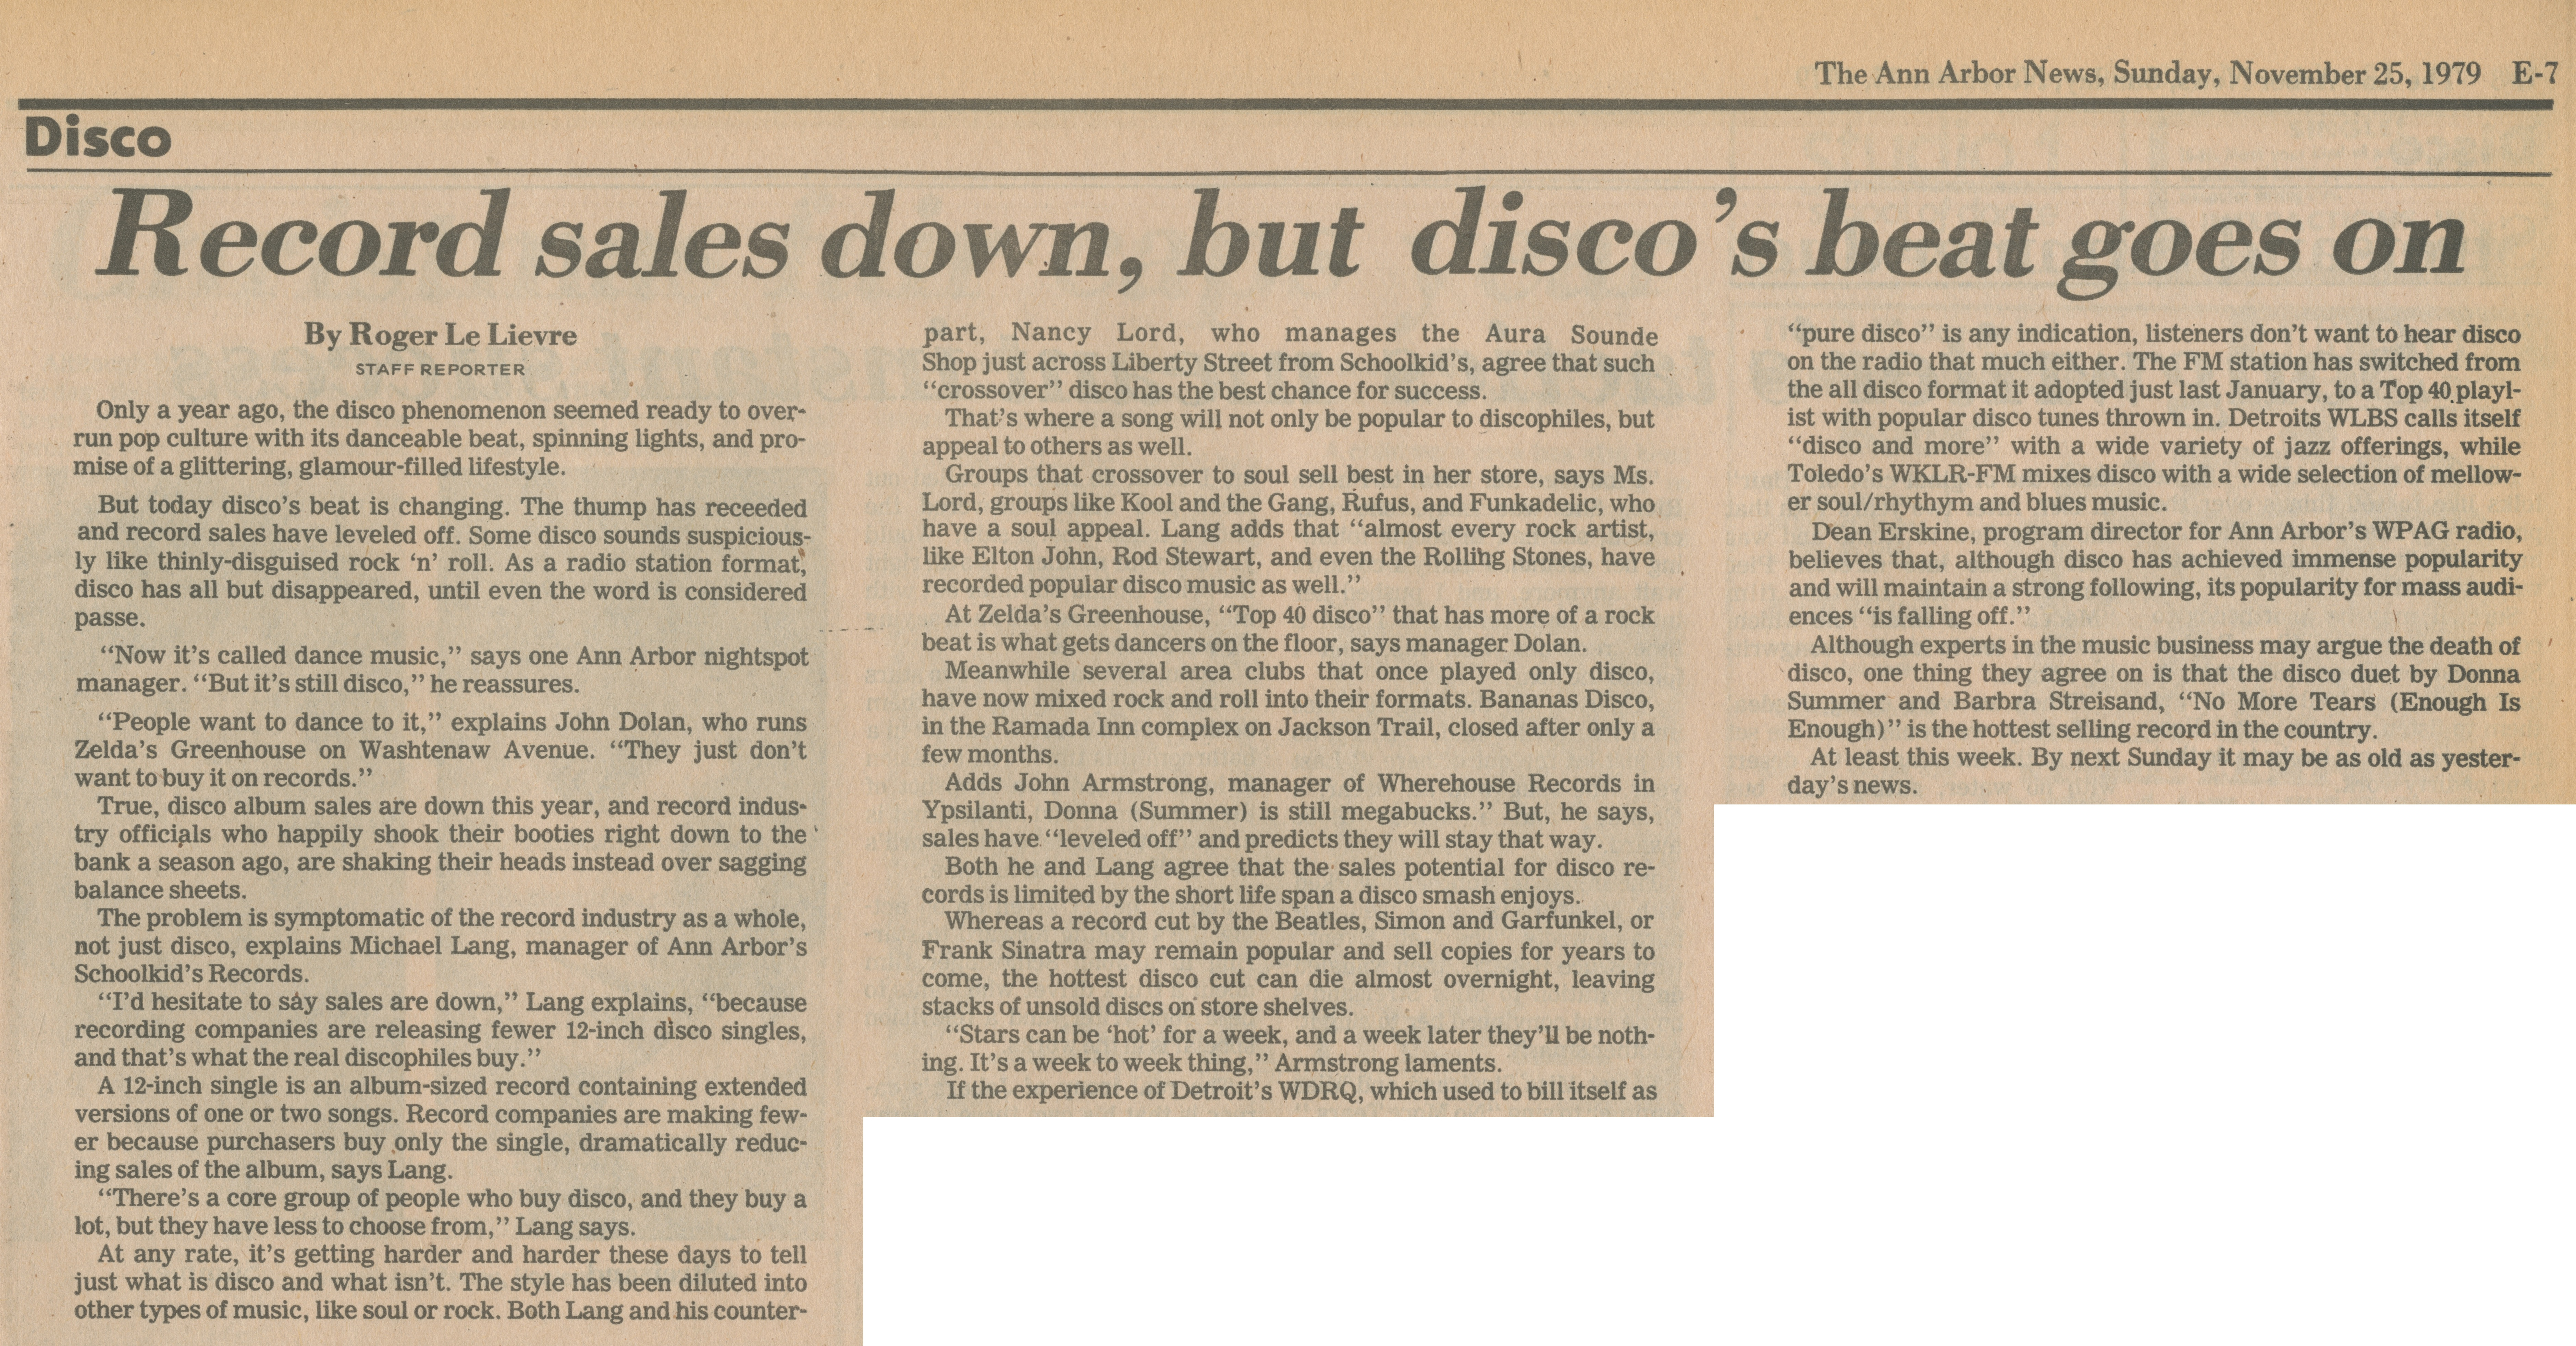 Record sales down, but disco's beat goes on image